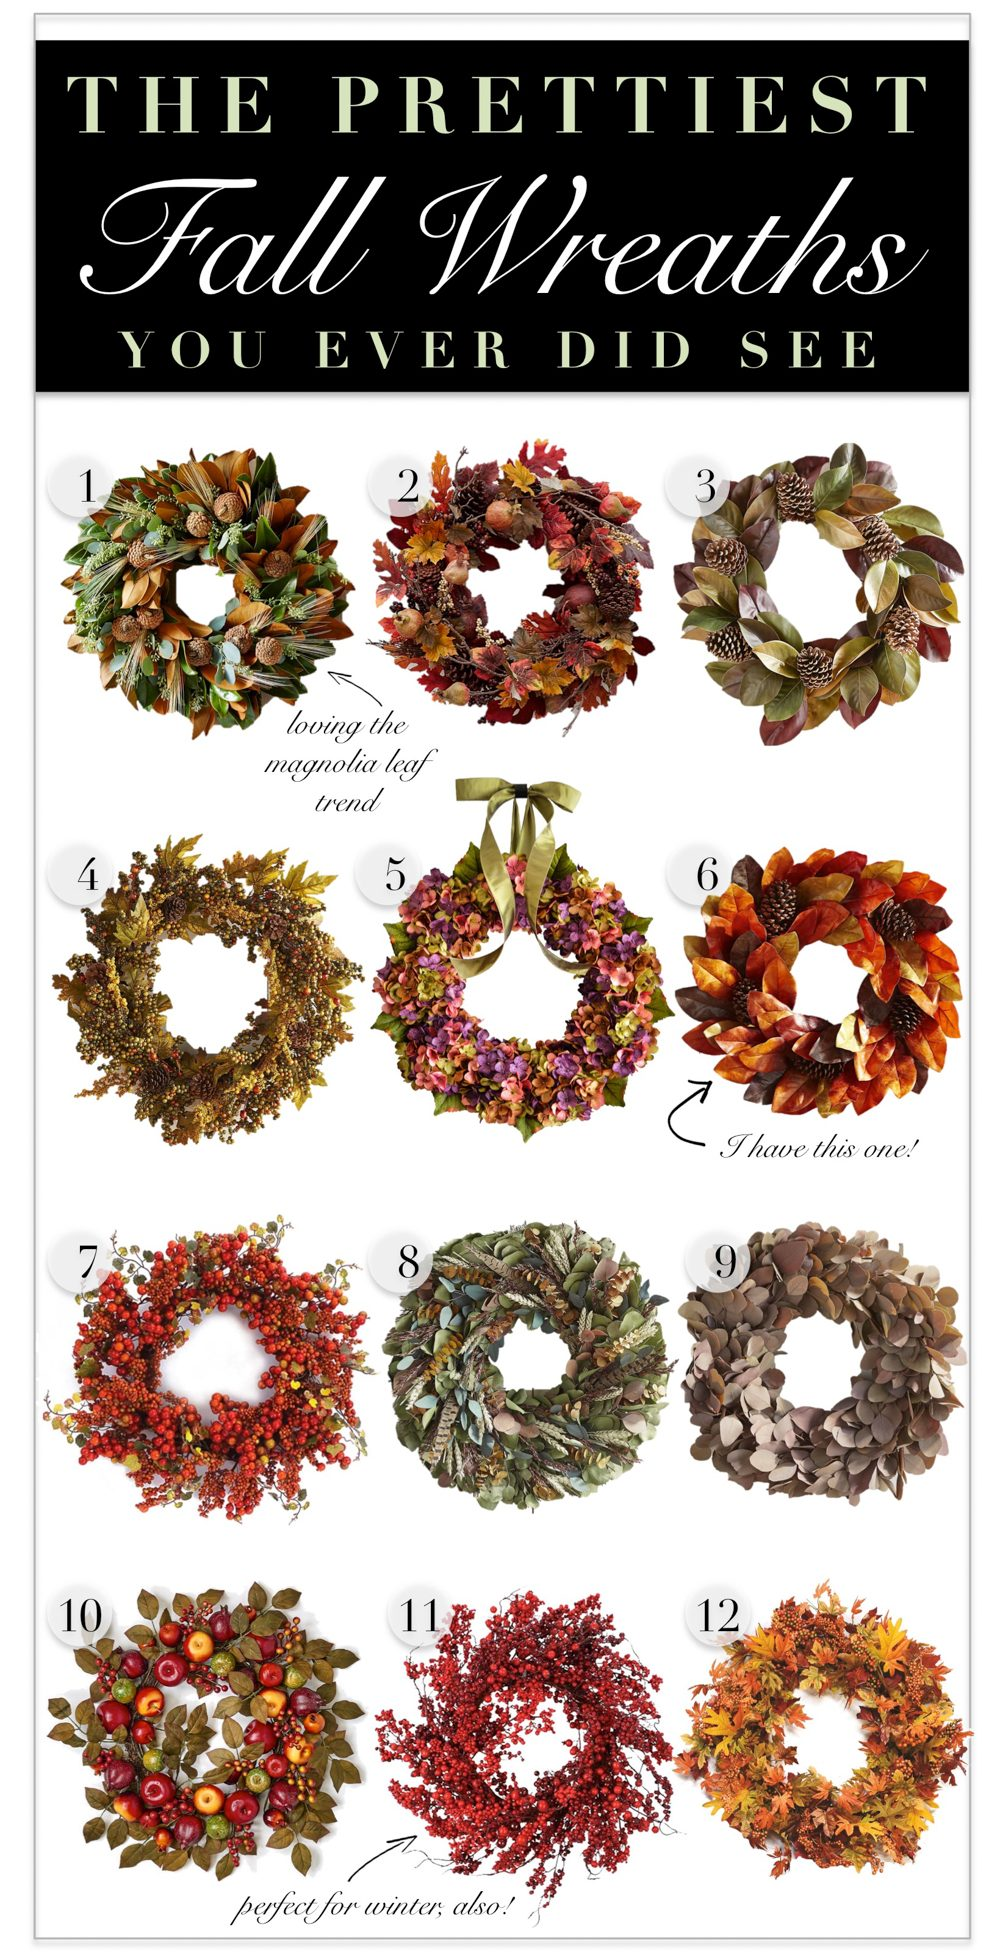 Prettiest Fall Wreaths